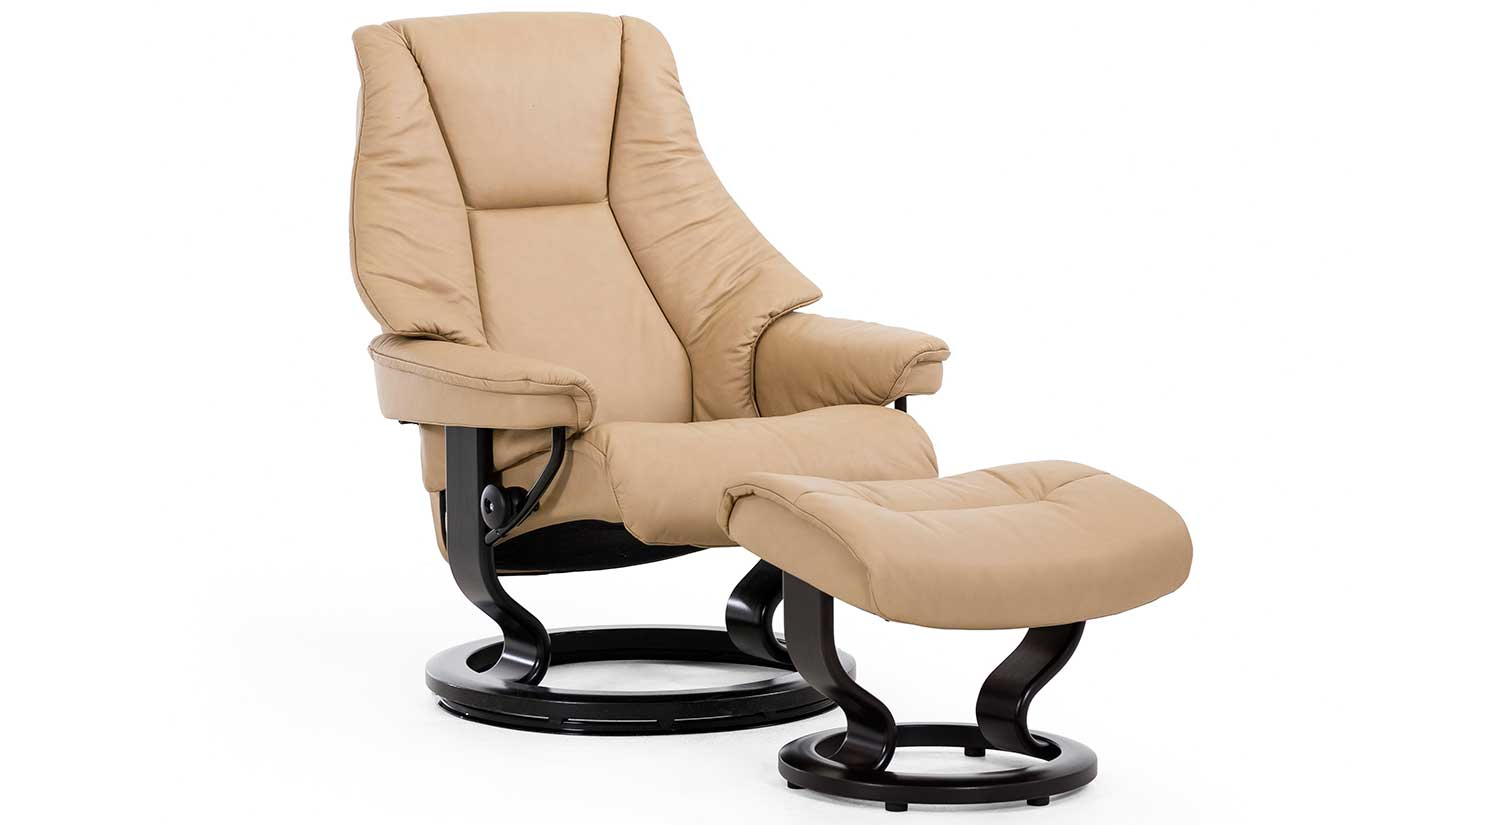 Stressless Chair Prices Circle Furniture Live Stressless Chair And Ottoman